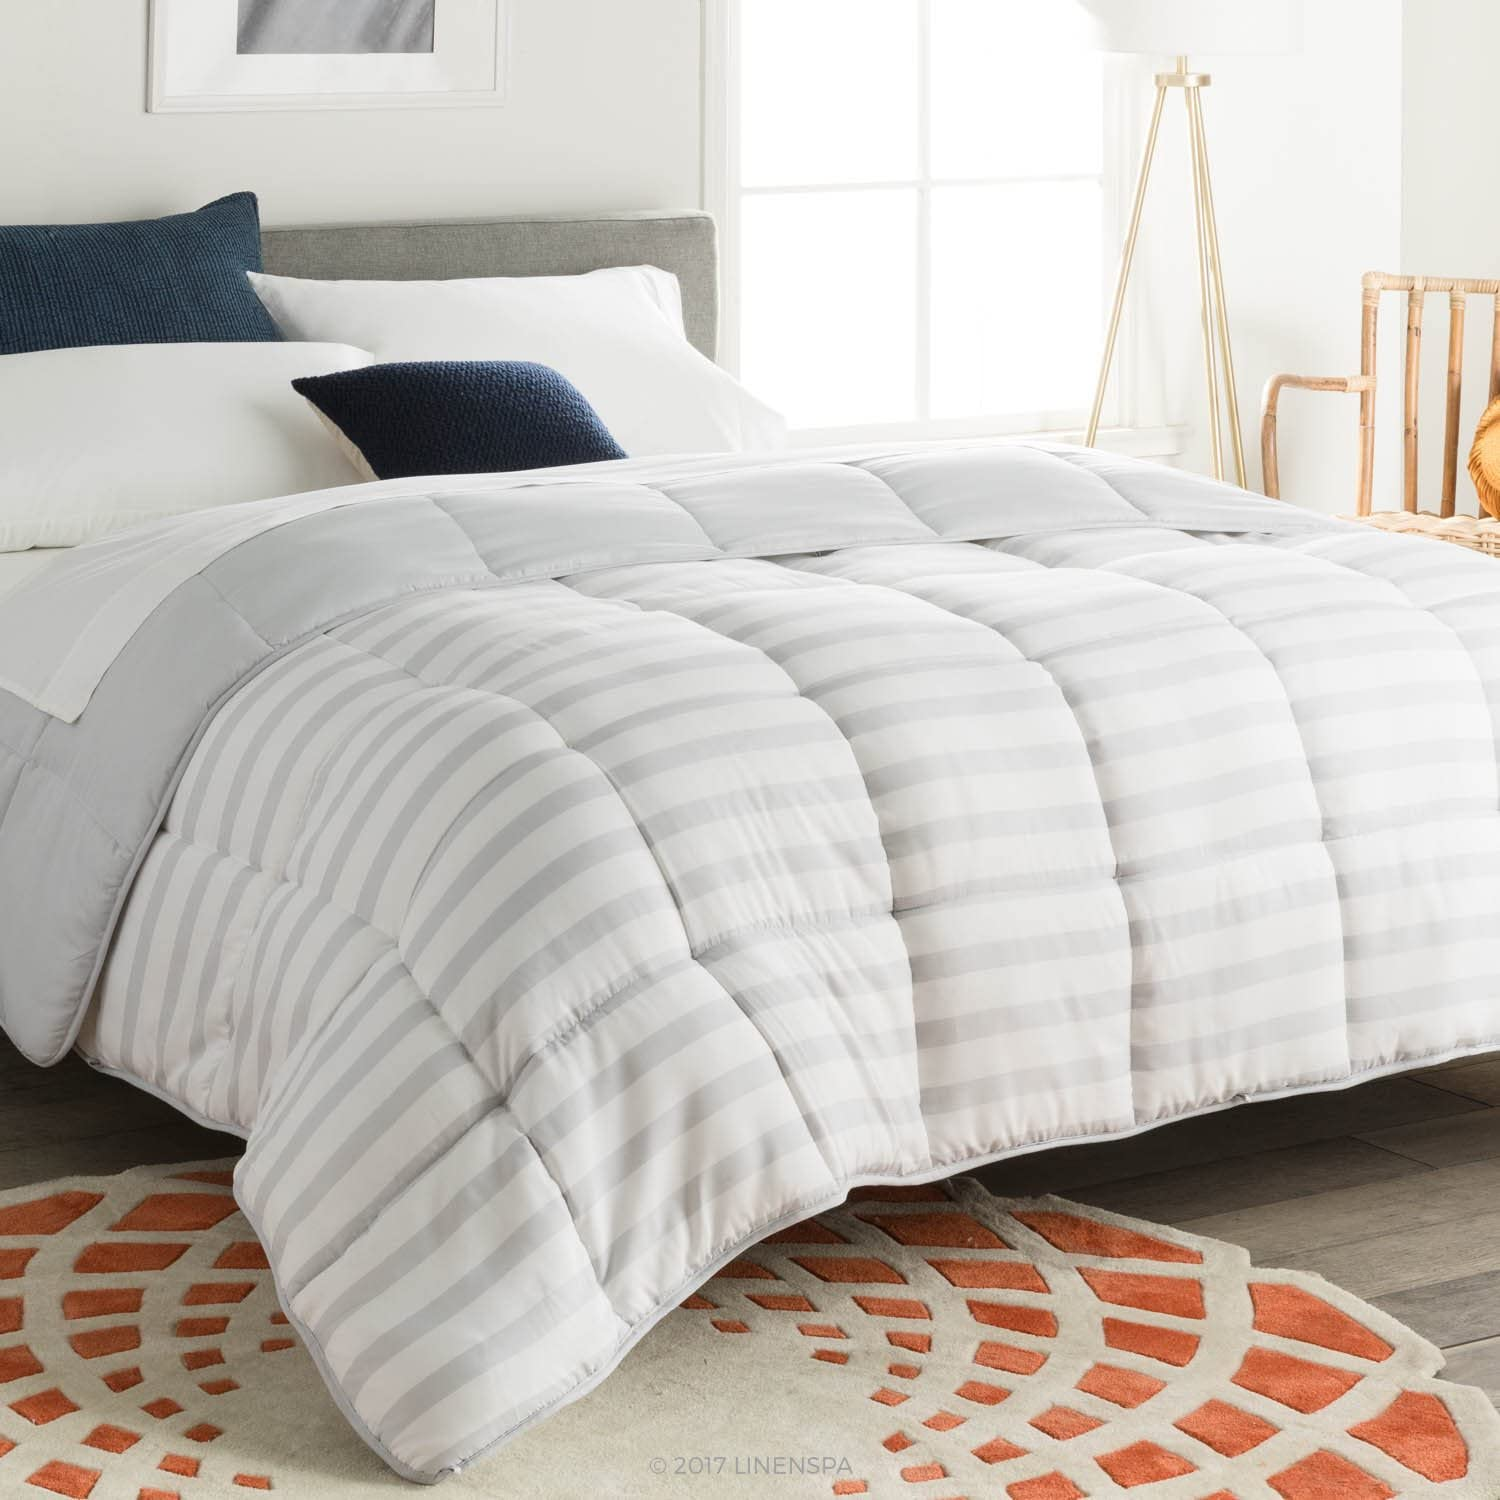 Linenspa All-Season Reversible Down Alternative Quilted Oversized King Comforter - Hypoallergenic - Plush Microfiber Fill - Machine Washable -Duvet Insert or Stand-Alone Comforter - Grey/White Stripe